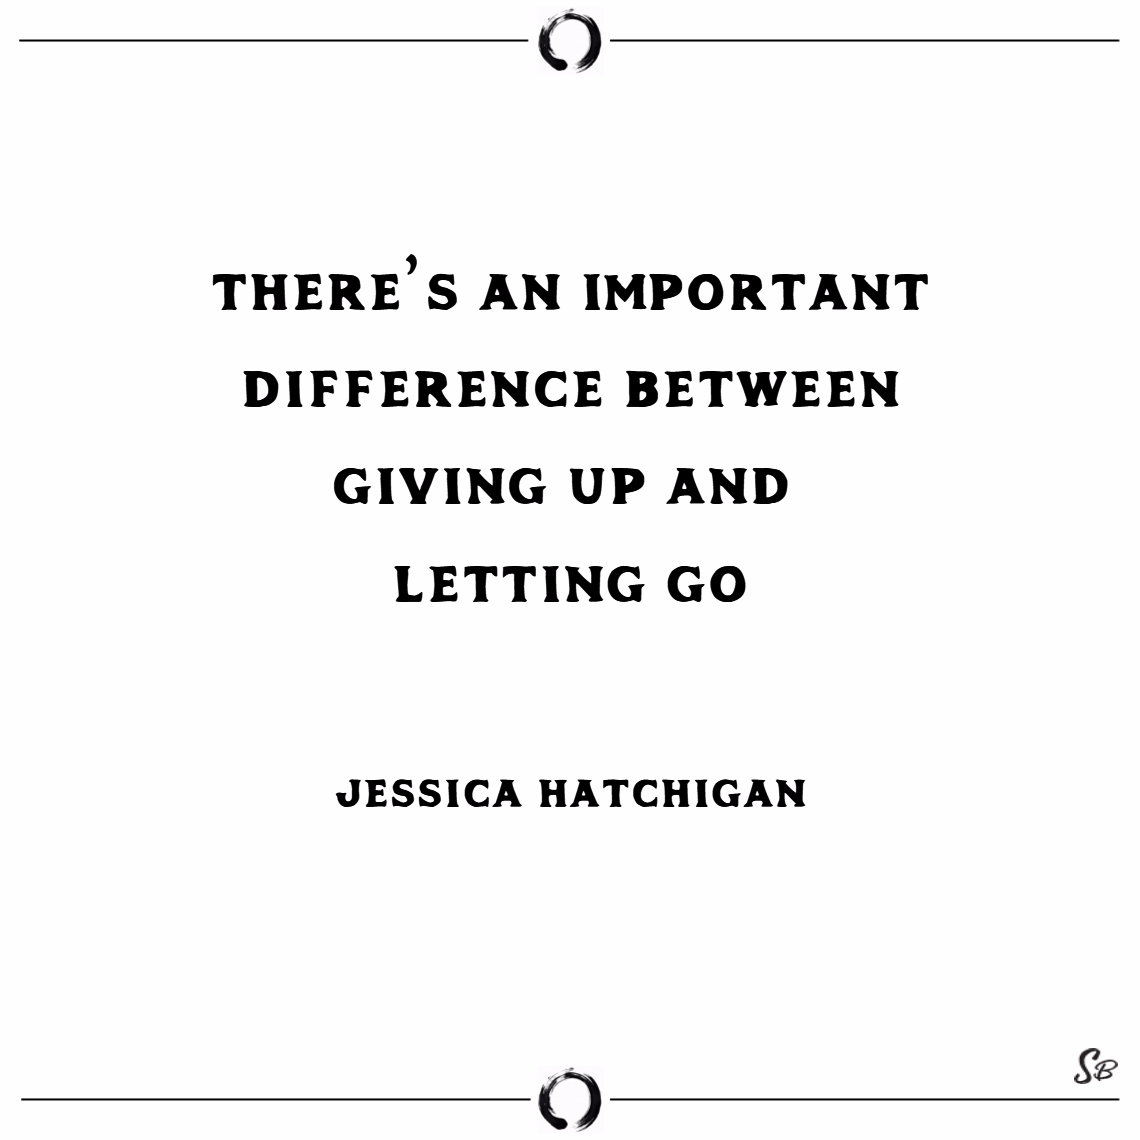 There's an important difference between giving up